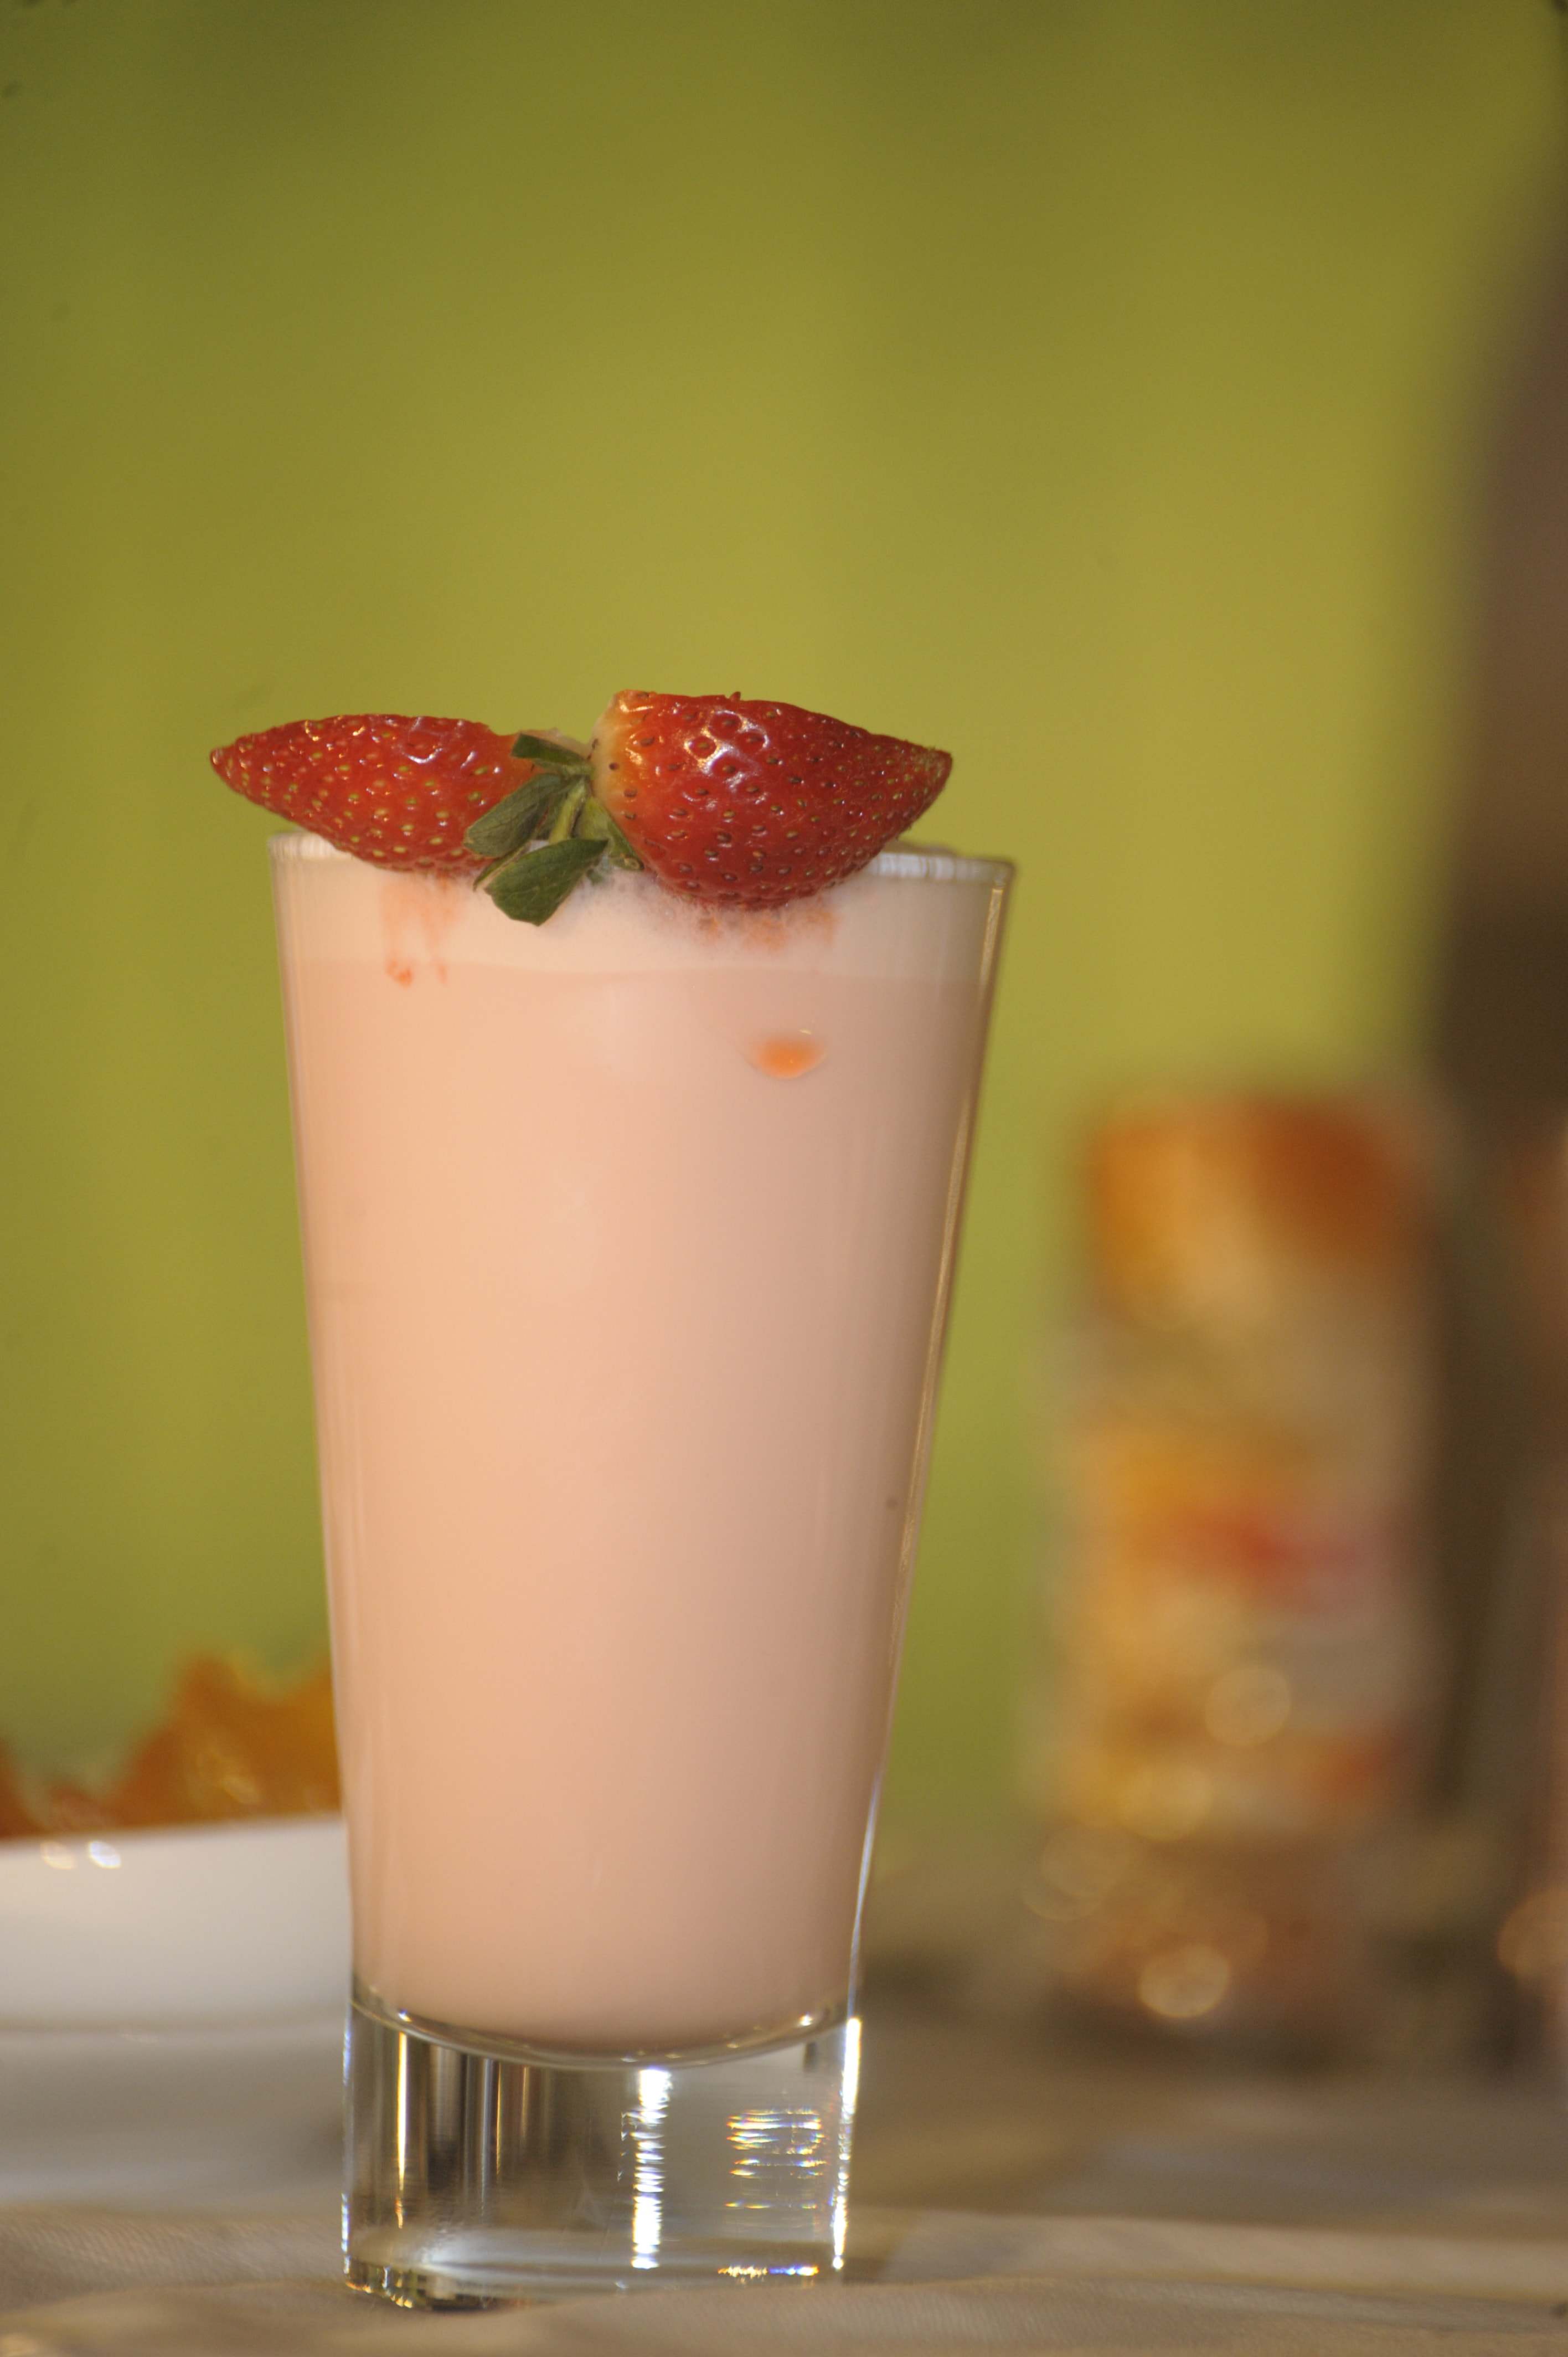 t-shake by Robert - Pretty in Pink